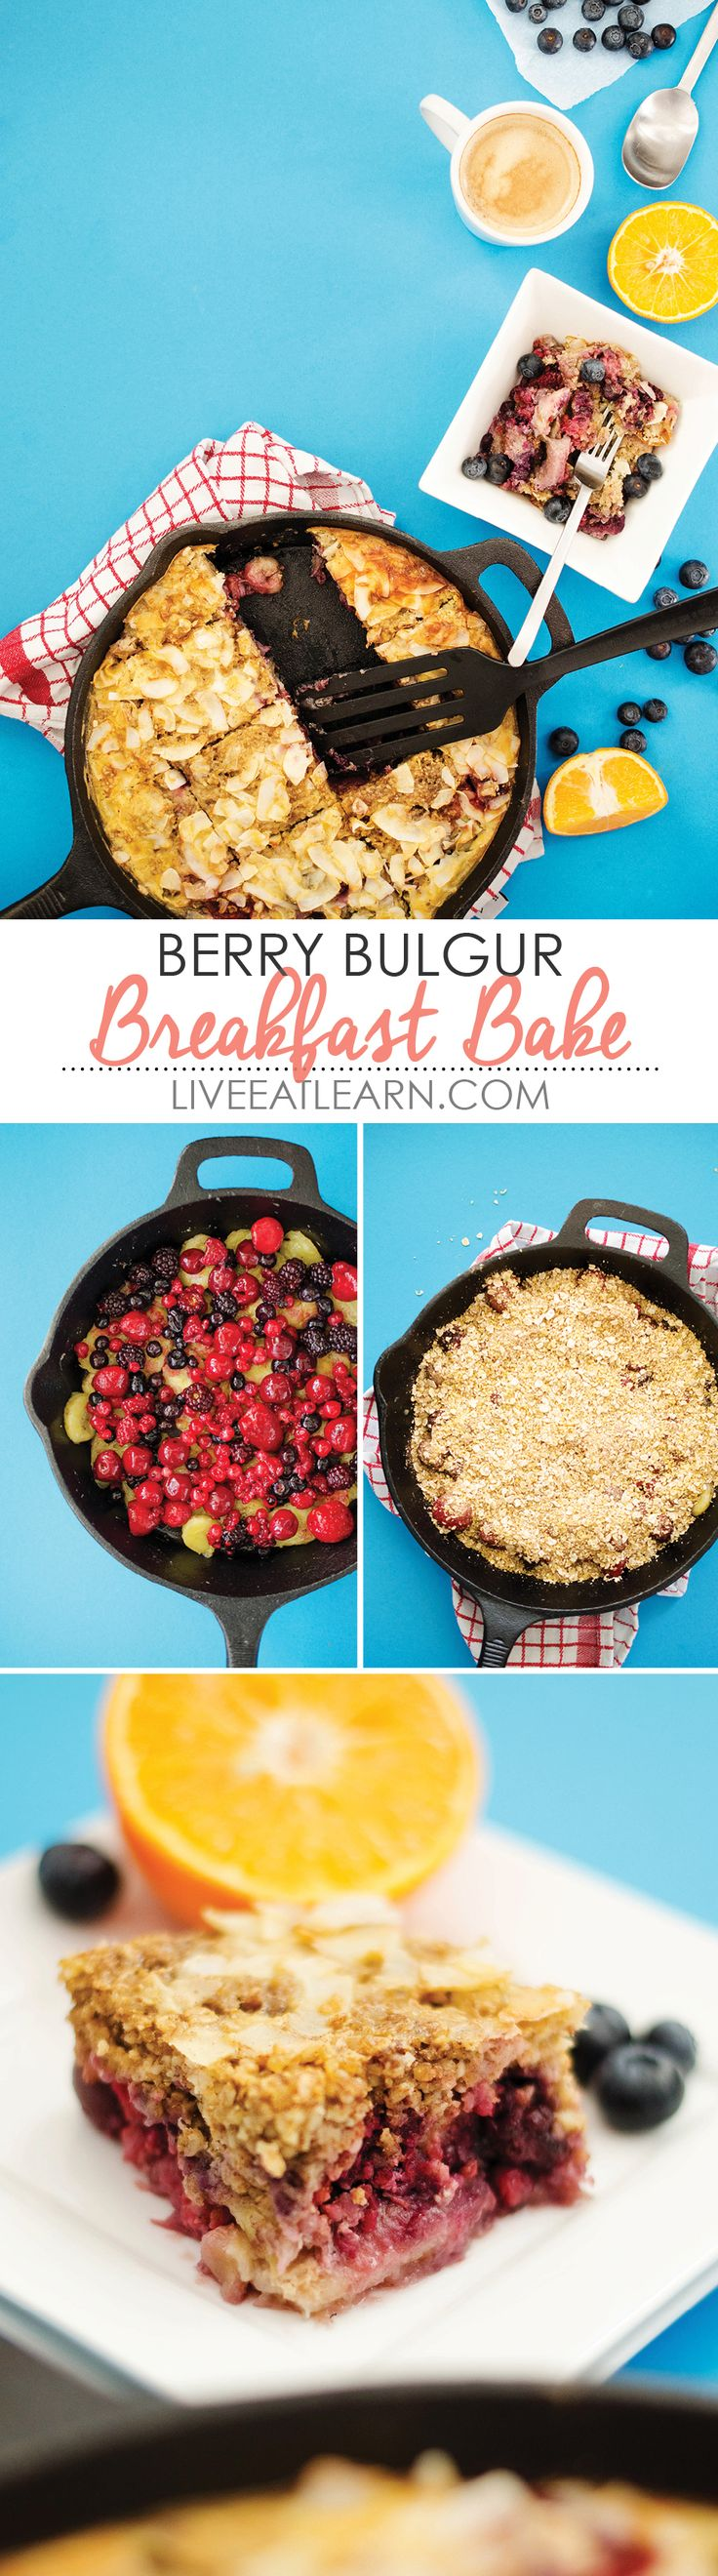 This berry bulgur breakfast bake is packed with antioxidant-rich fruit, fiber-full oats and bulgur, and comes together quickly and in one dish! It's the perfect healthy breakfast recipe to put your cast iron skillet to use. // Live Eat Learn